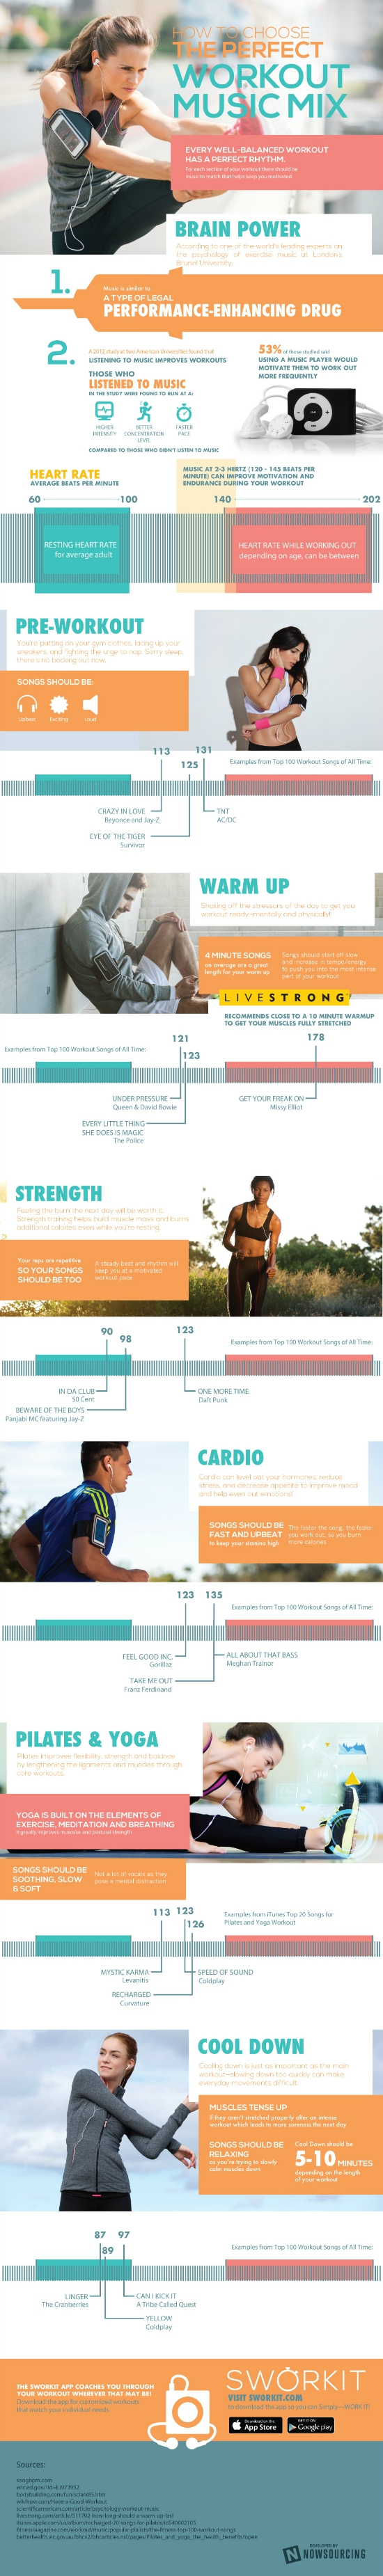 sworkit-music-infographic 550px